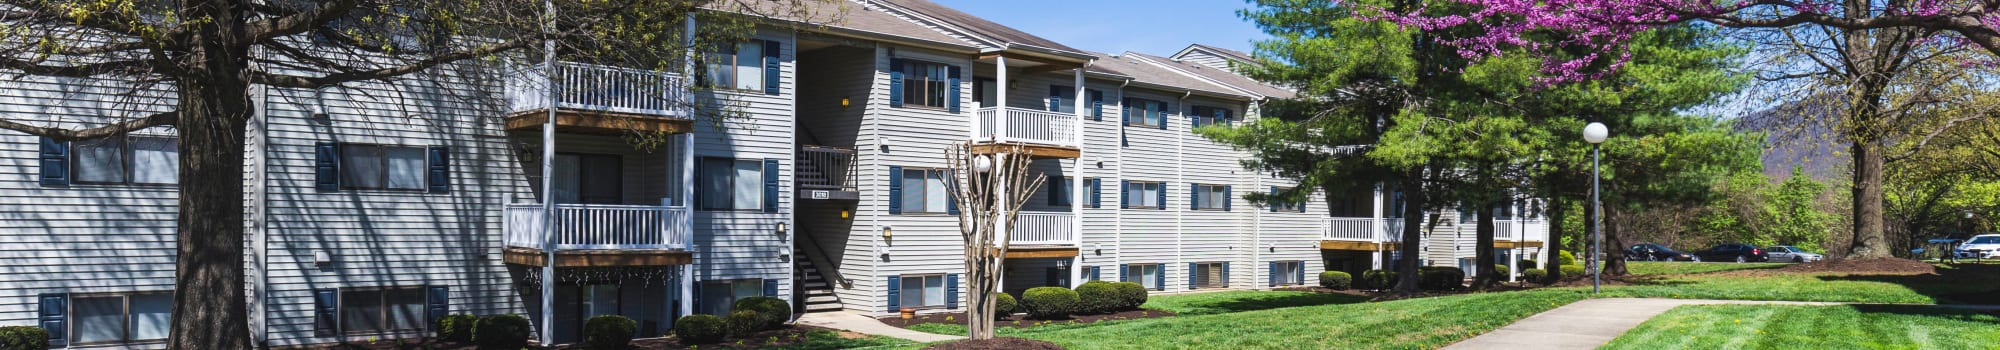 Floor plans at Hickory Woods Apartments in Roanoke, Virginia